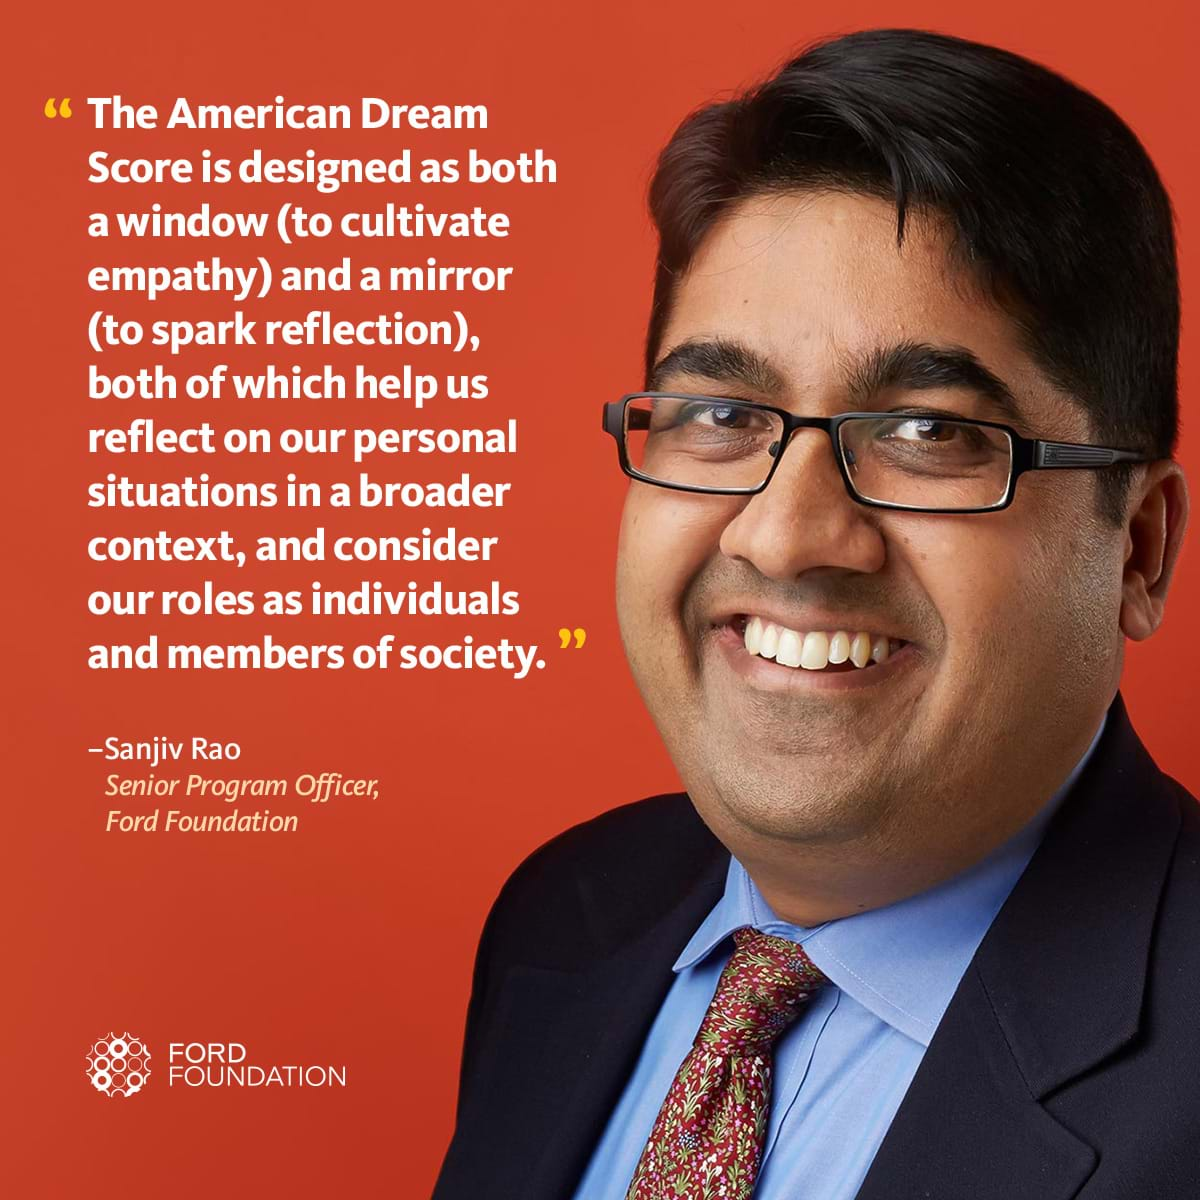 Photo of Sanjiv Rao with a quote about his American Dream Score